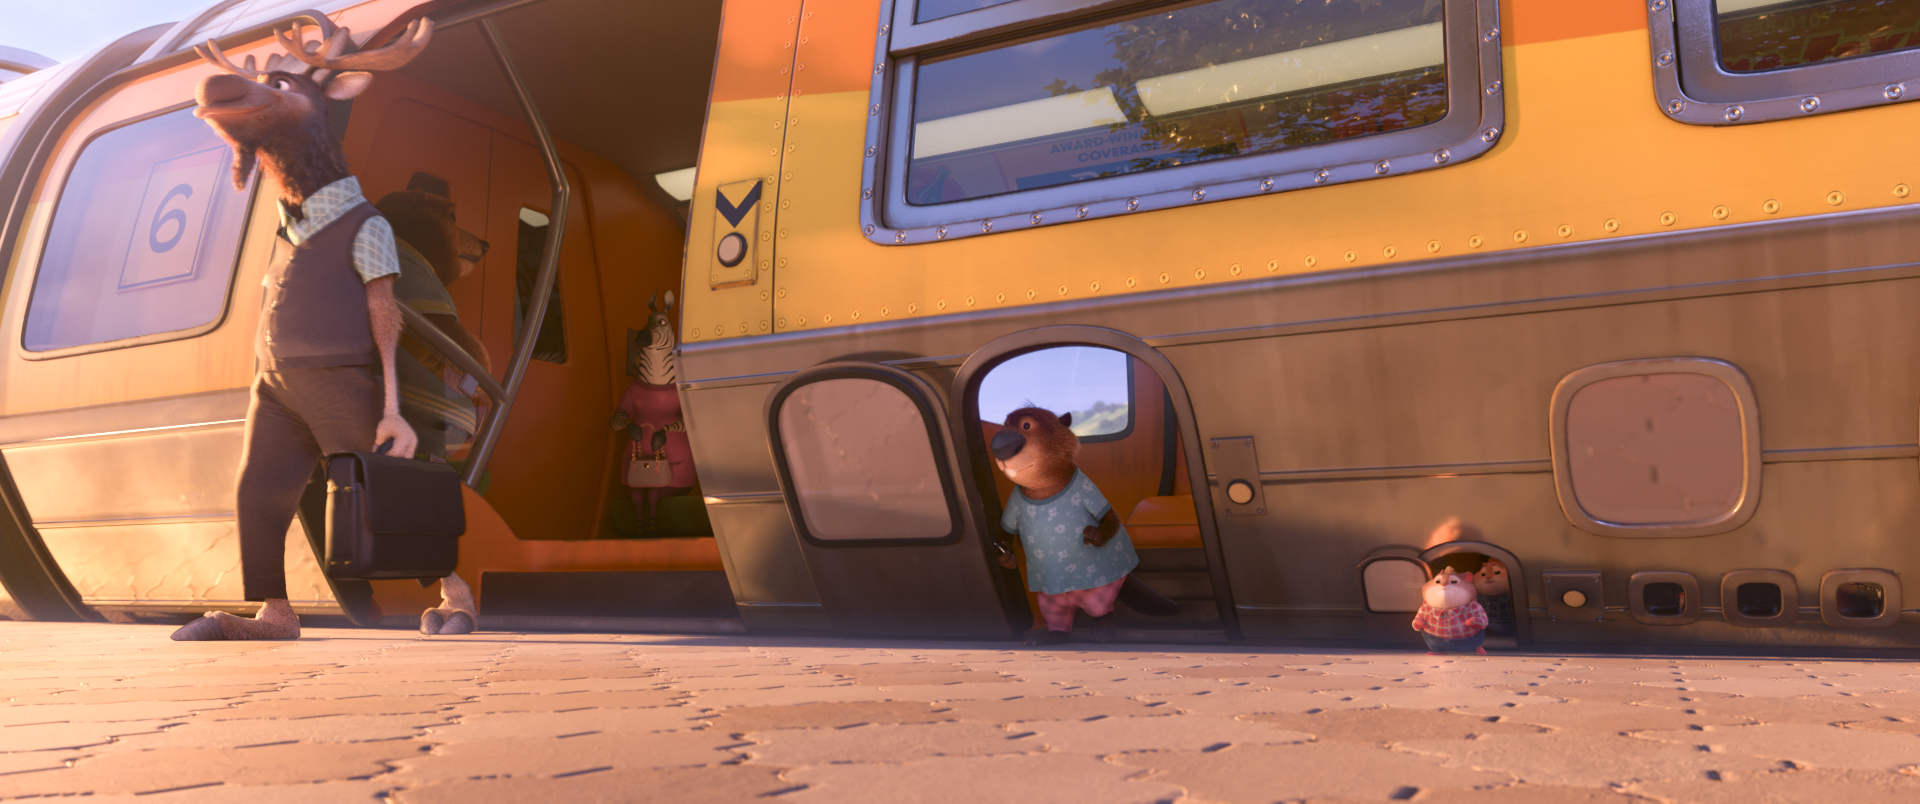 "A WORLD FOR BIG AND SMALL — Walt Disney Animation Studios' ""Zootopia"" features a vast world where humans never existed. With advanced transportation systems that accommodate mammals of all shapes and sizes, the modern mammal metropolis was built by animals for animals. Directed by Byron Howard and Rich Moore, and produced by Clark Spencer, ""Zootopia"" opens in U.S. theaters on March 4, 2016. ©2016 Disney. All Rights Reserved."